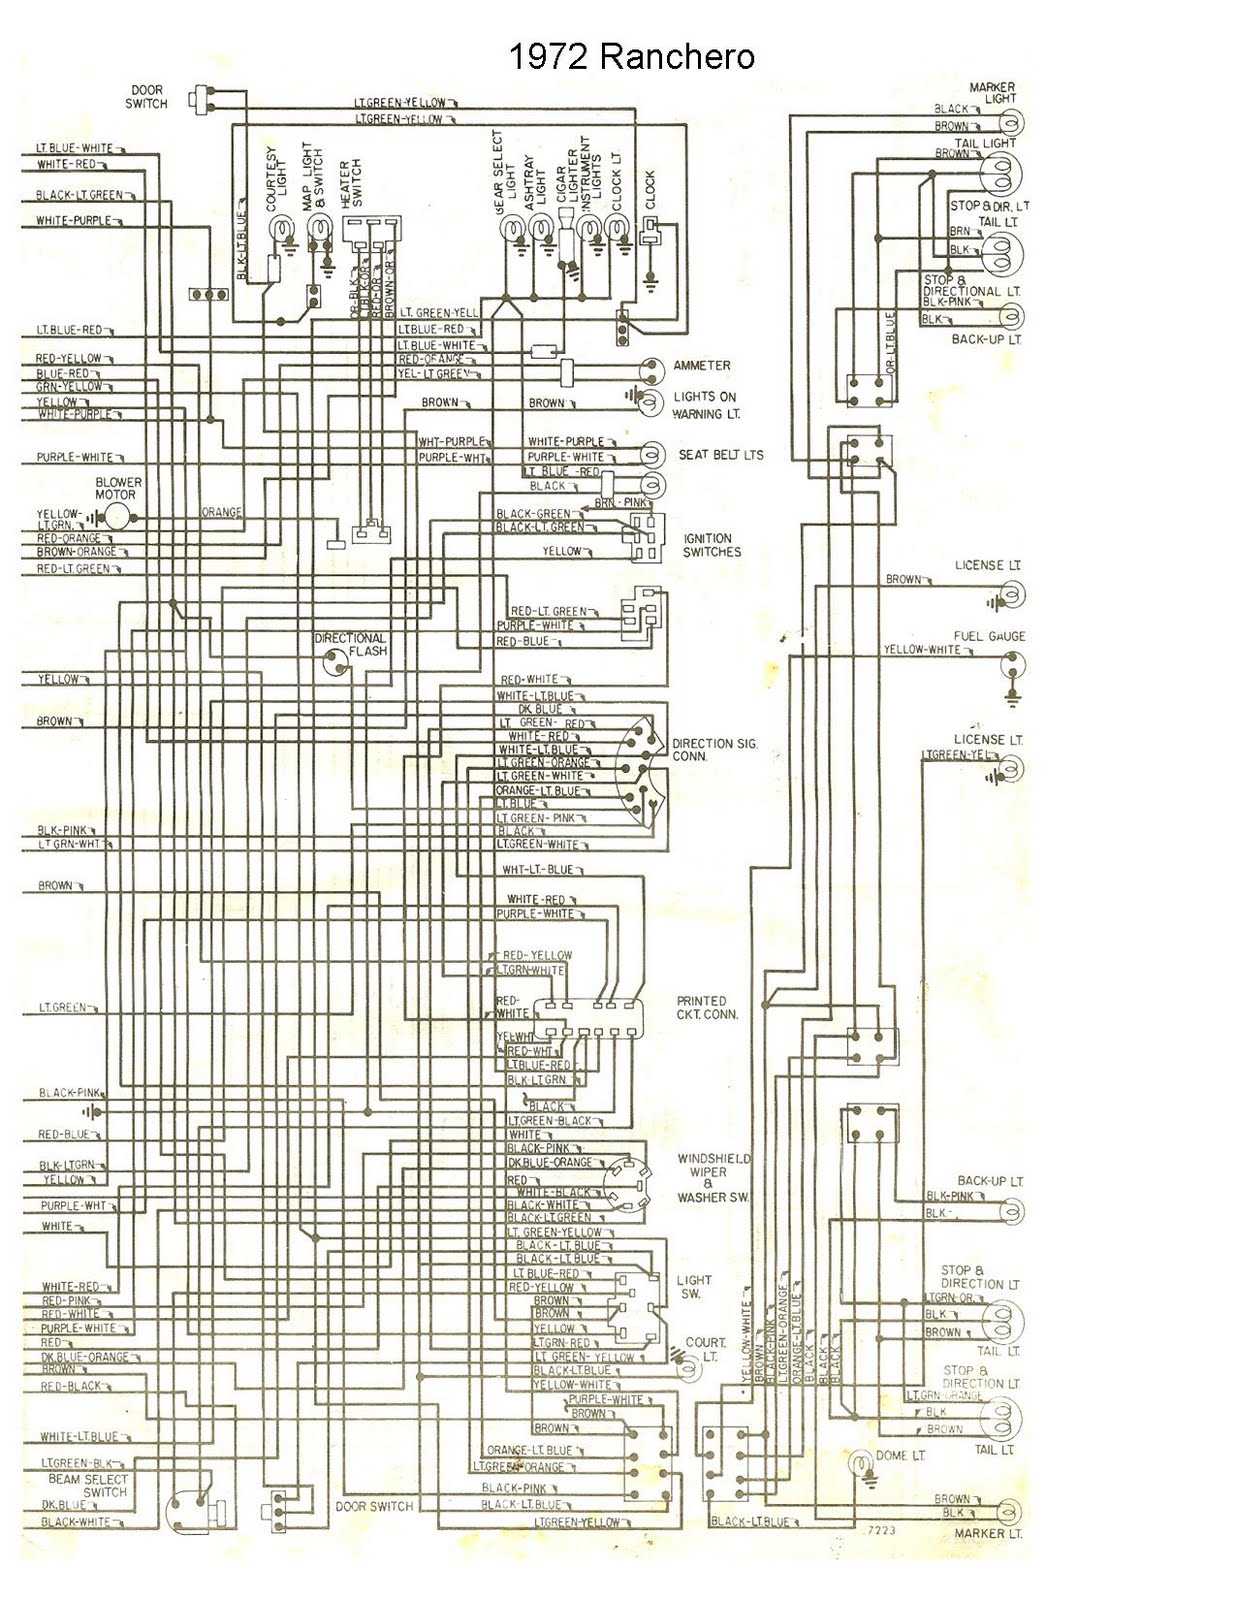 Wonderful 1965 Ford Falcon Wiring Diagram Contemporary - Best Image ...